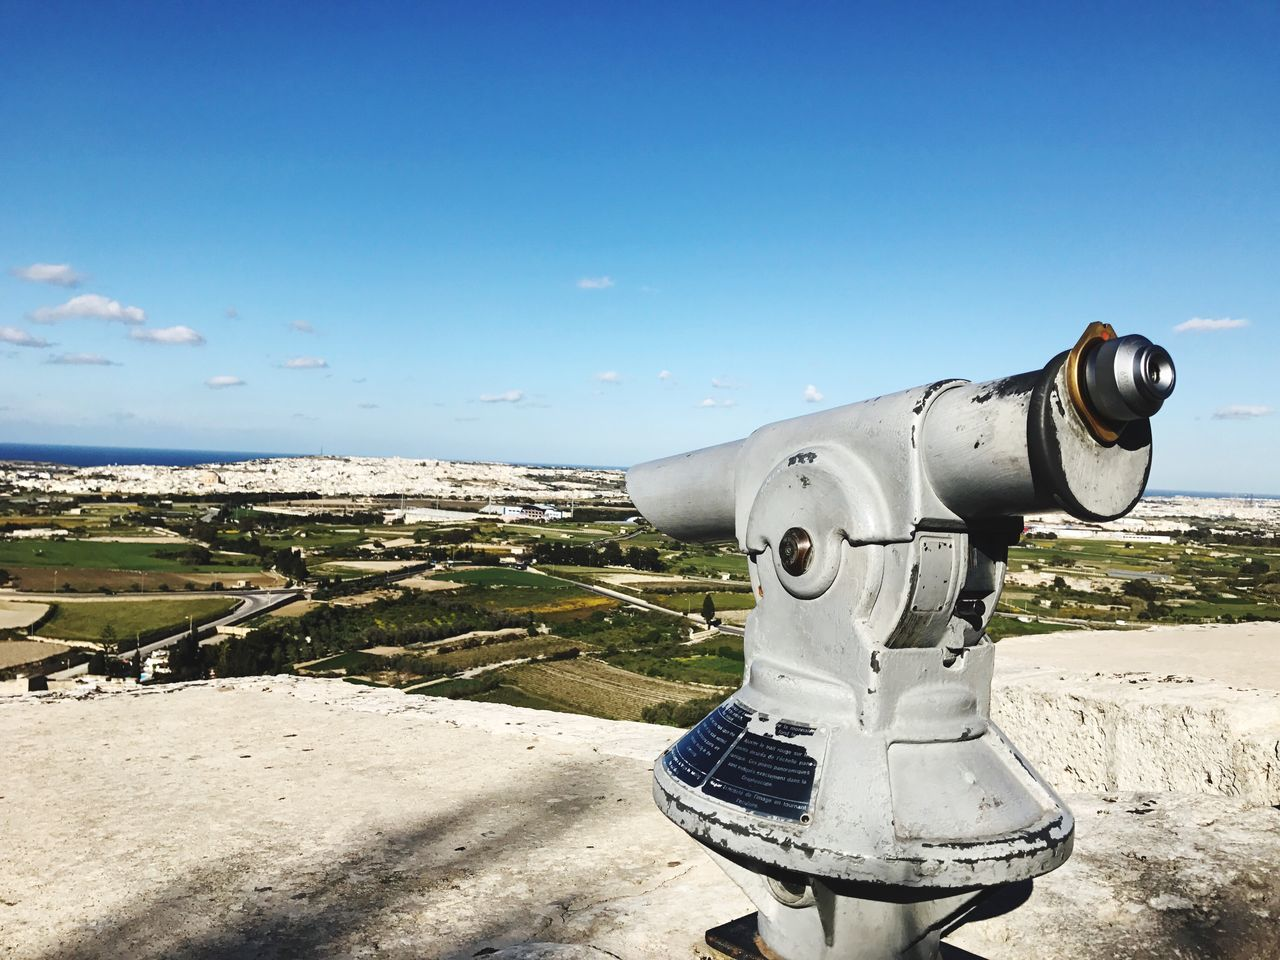 Mdina Malta MDinFocus Coin Operated Coin-operated Binoculars Telescope Surveillance Observation Point Hand-held Telescope No People Day Blue Outdoors Sky Water Scenics Close-up Nature Cityscape